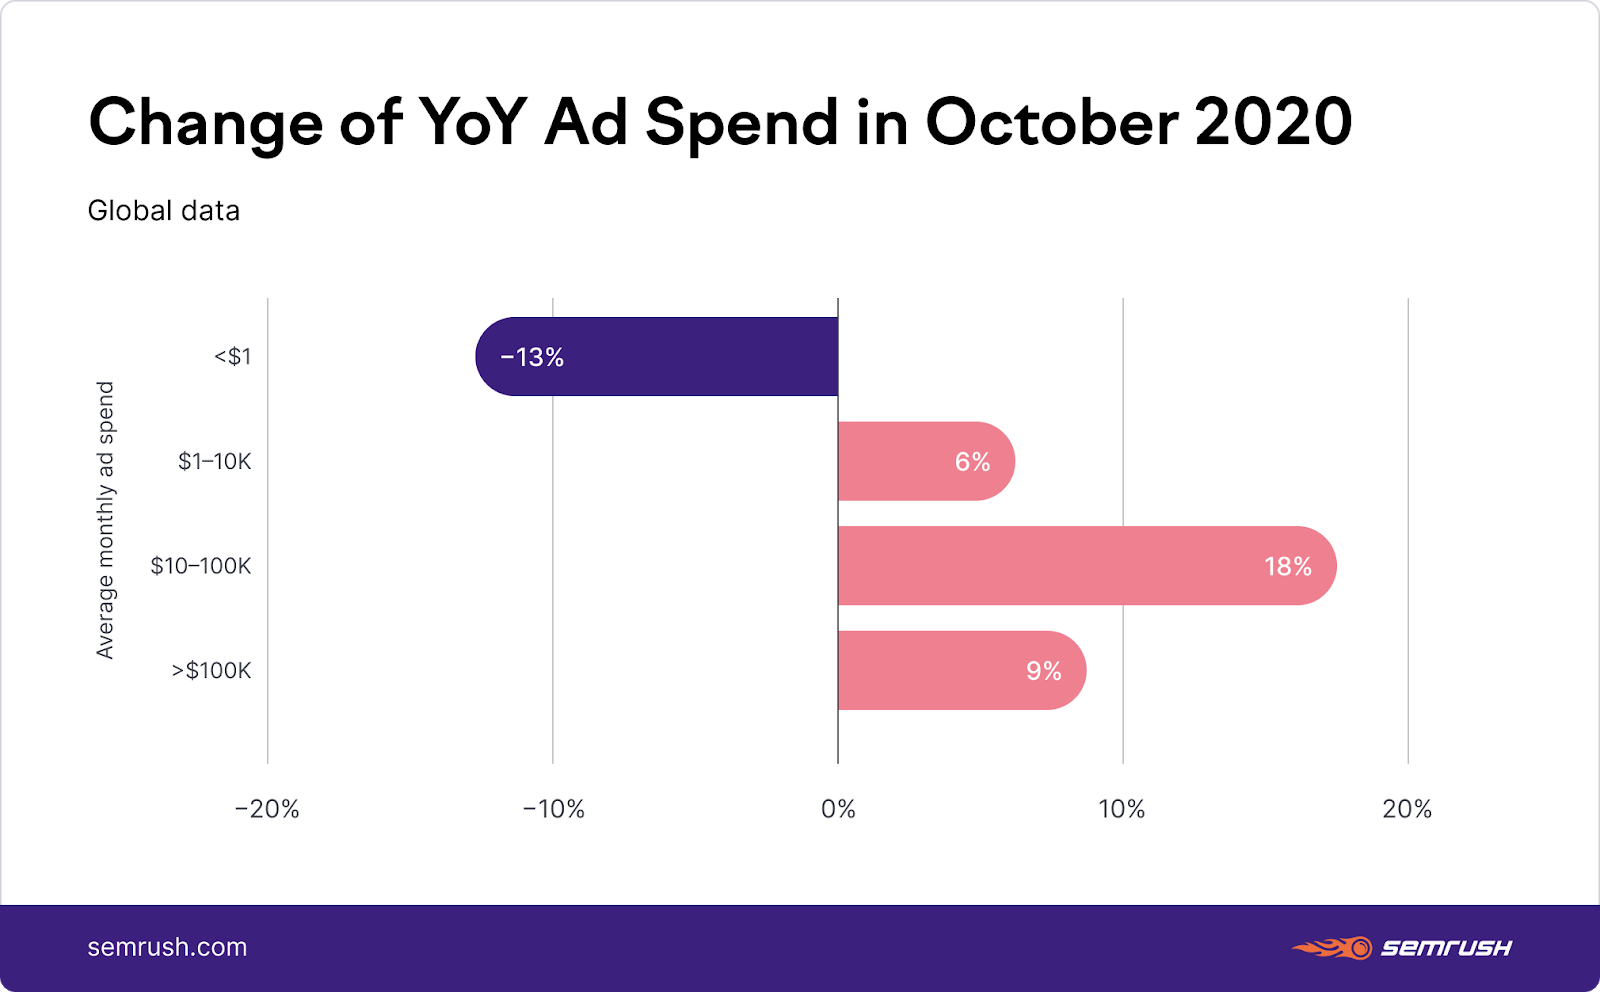 Year-over-year change in advertising spend by ecommerce websites